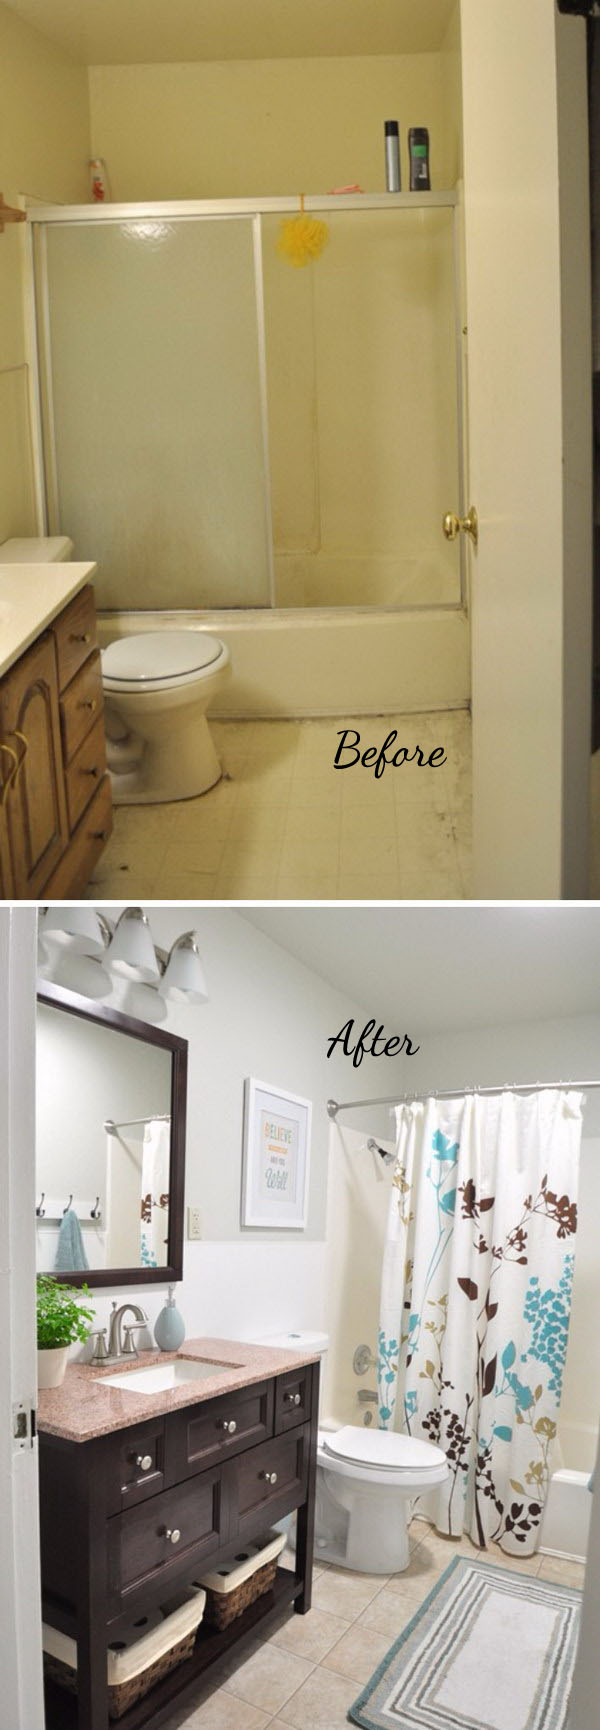 Bathroom Before And After before and after: 20+ awesome bathroom makeovers - hative